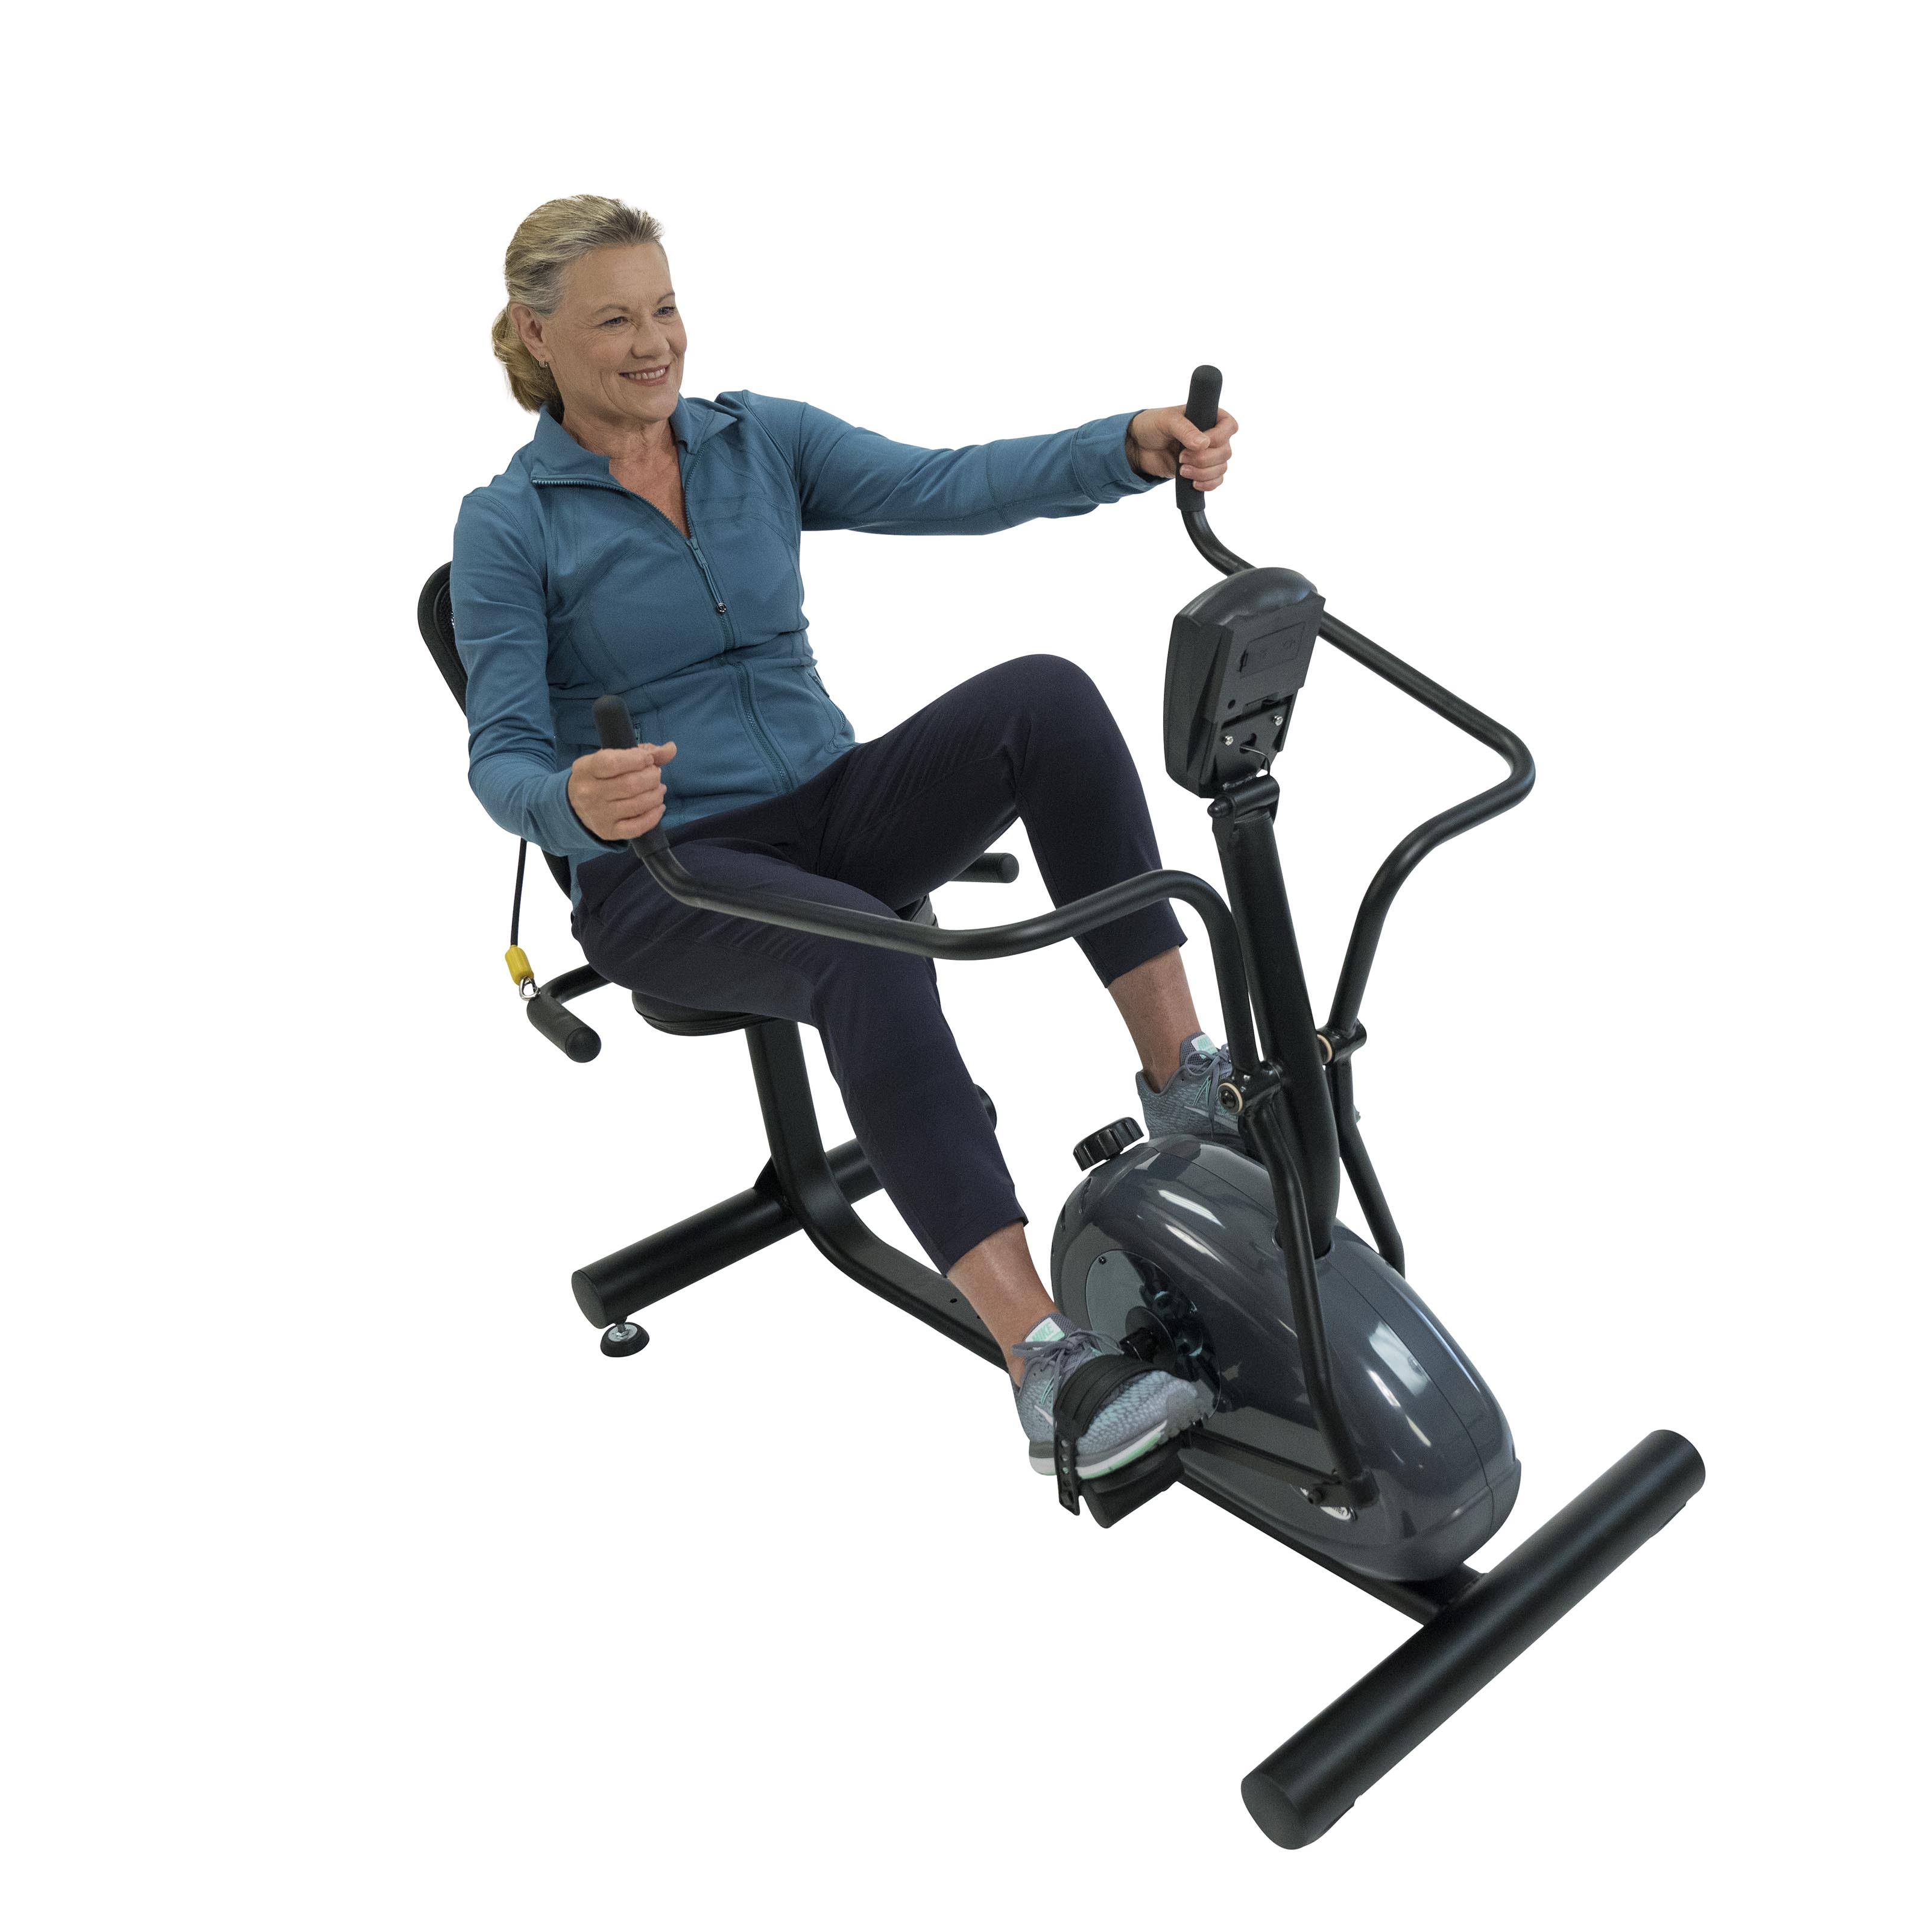 PhysioTrainer CXT Recumbent Cross Trainer for Seniors No Assembly Required